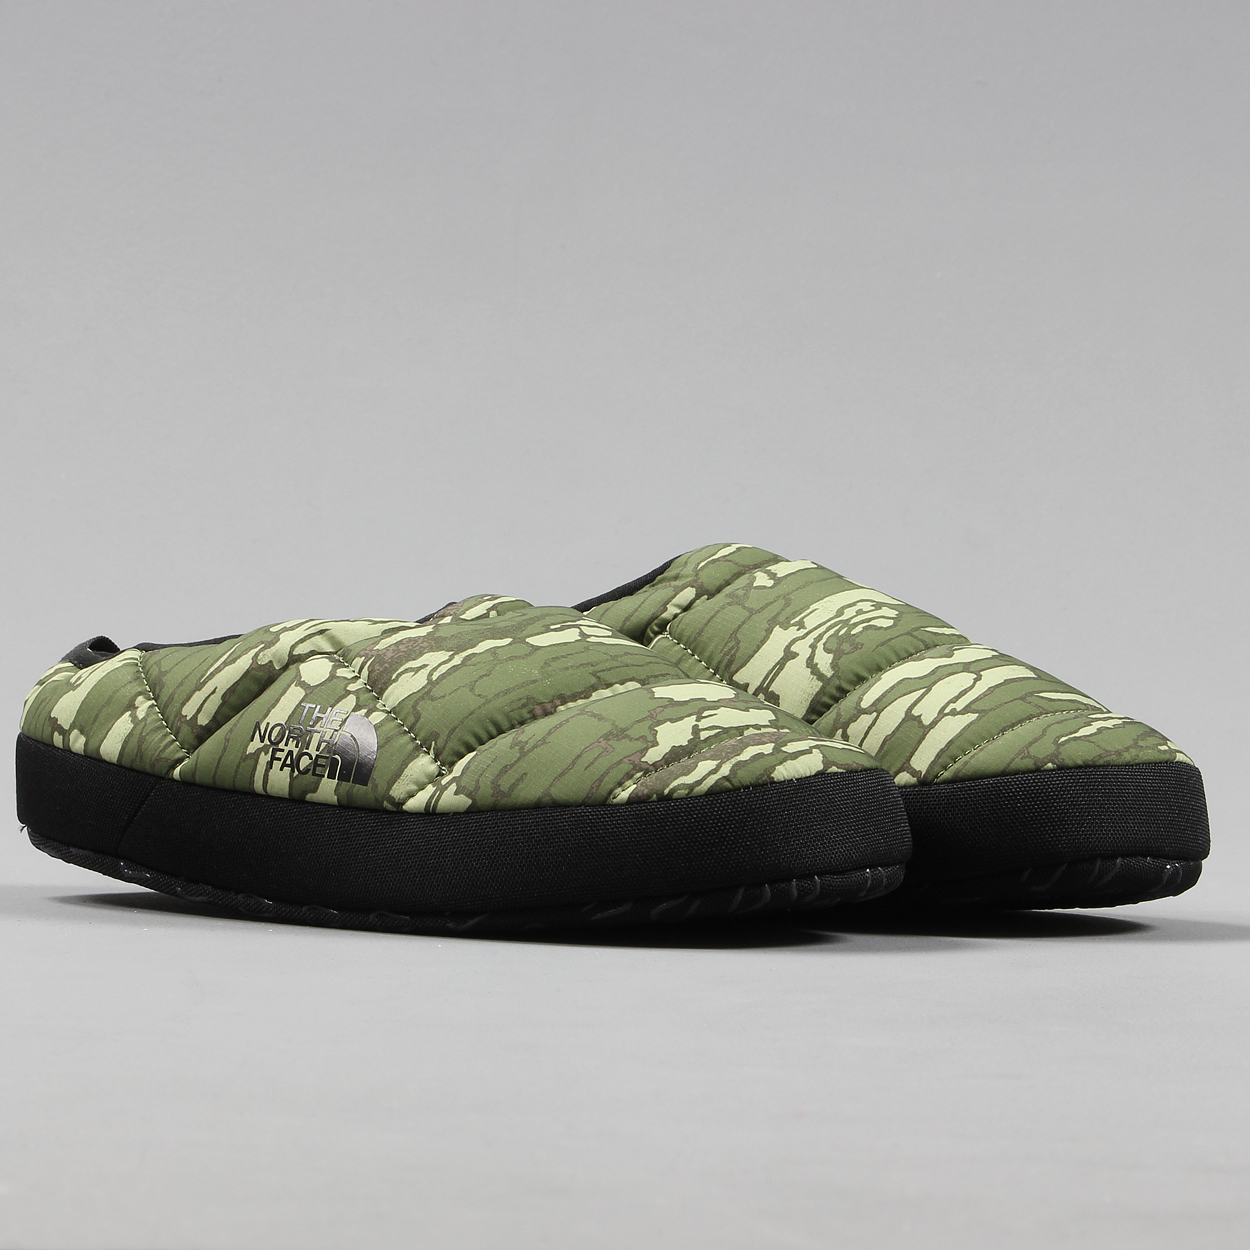 & The North Face Mens Nuptse Tent Mules III Slippers Camo Black £36.00